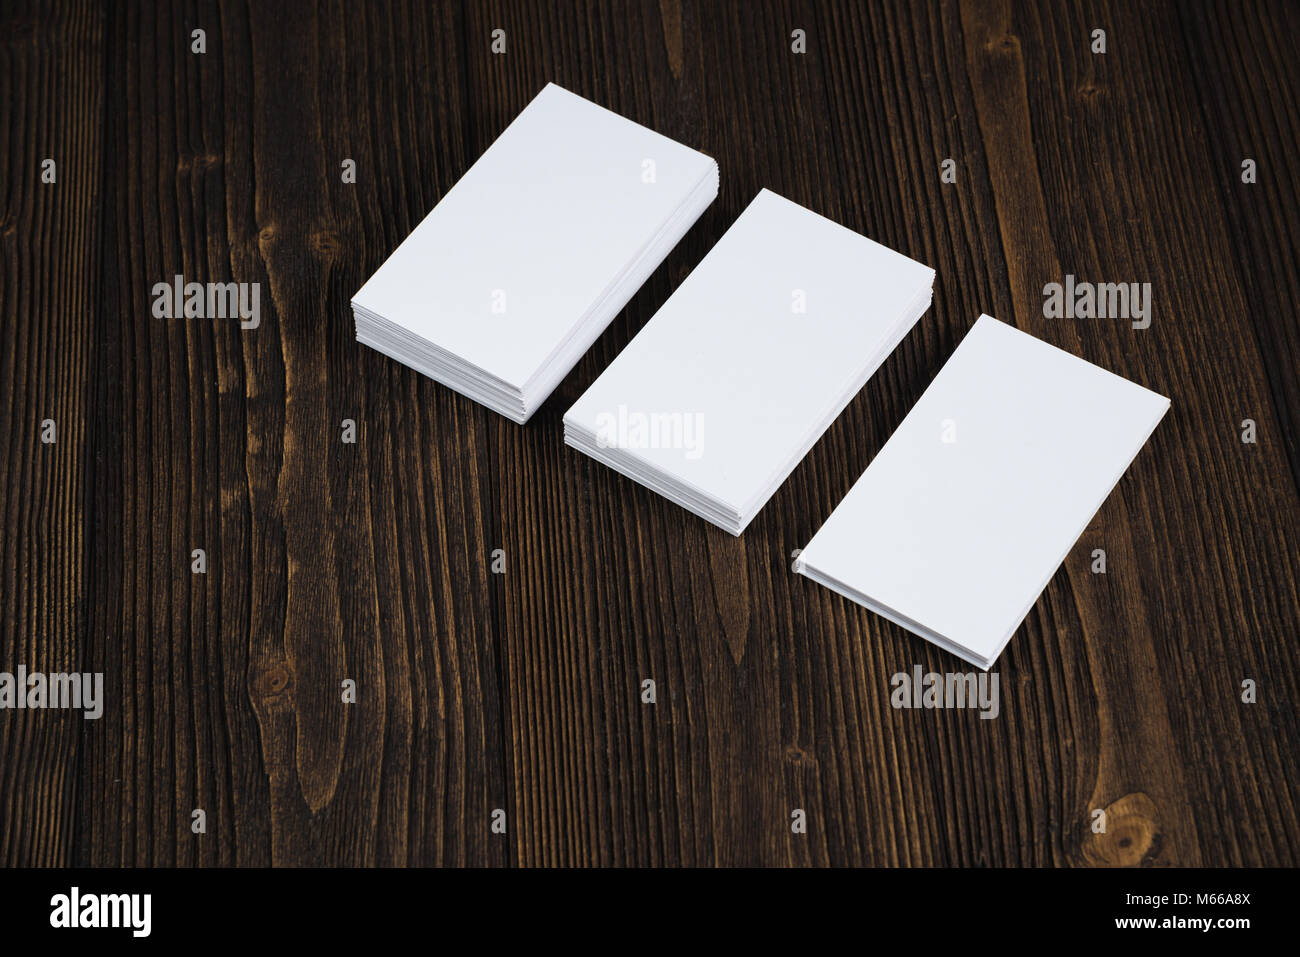 Blank business cards on wooden working table with copy space for add ...